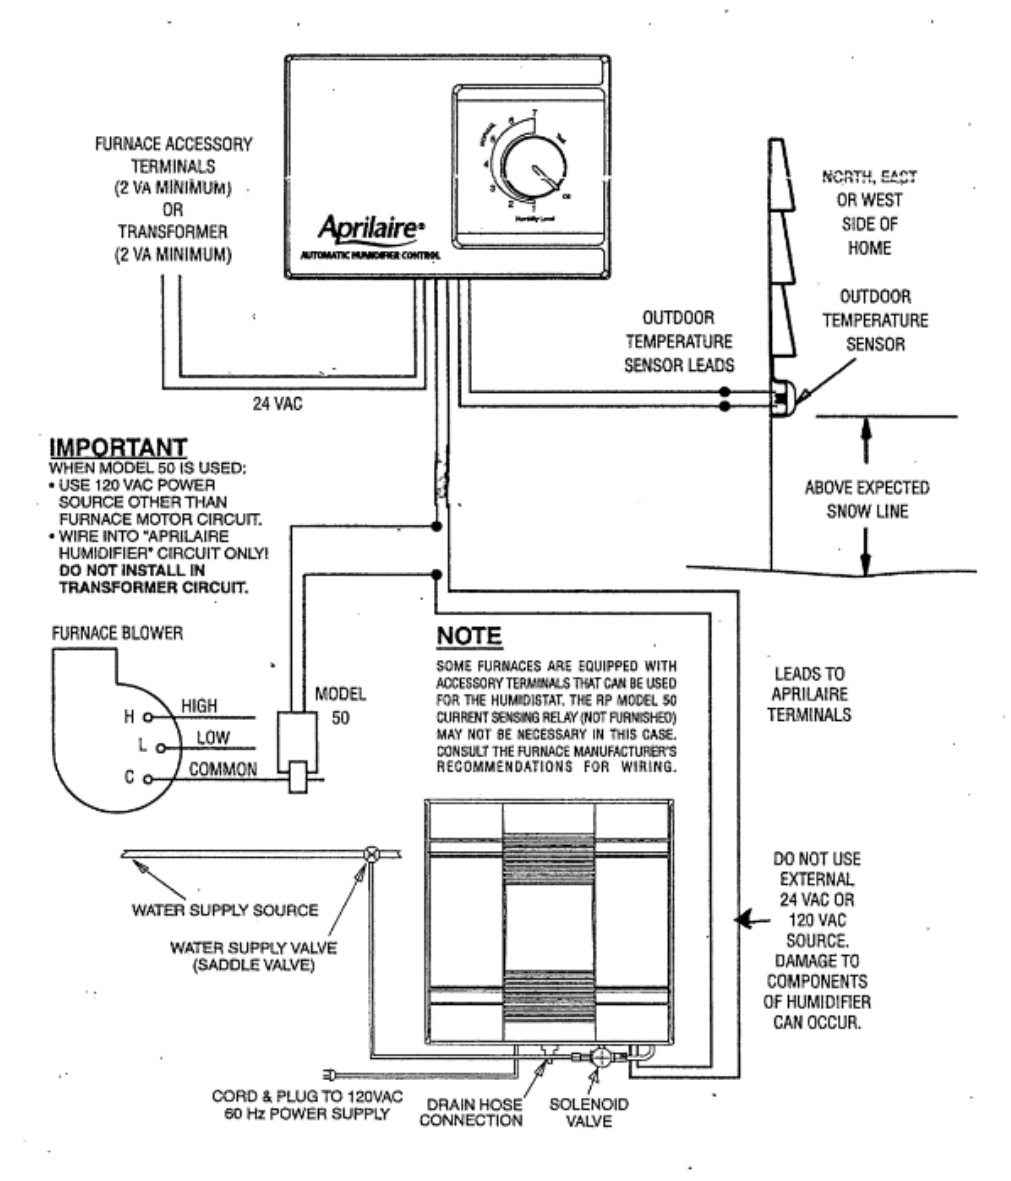 trane furnace fan wiring diagram